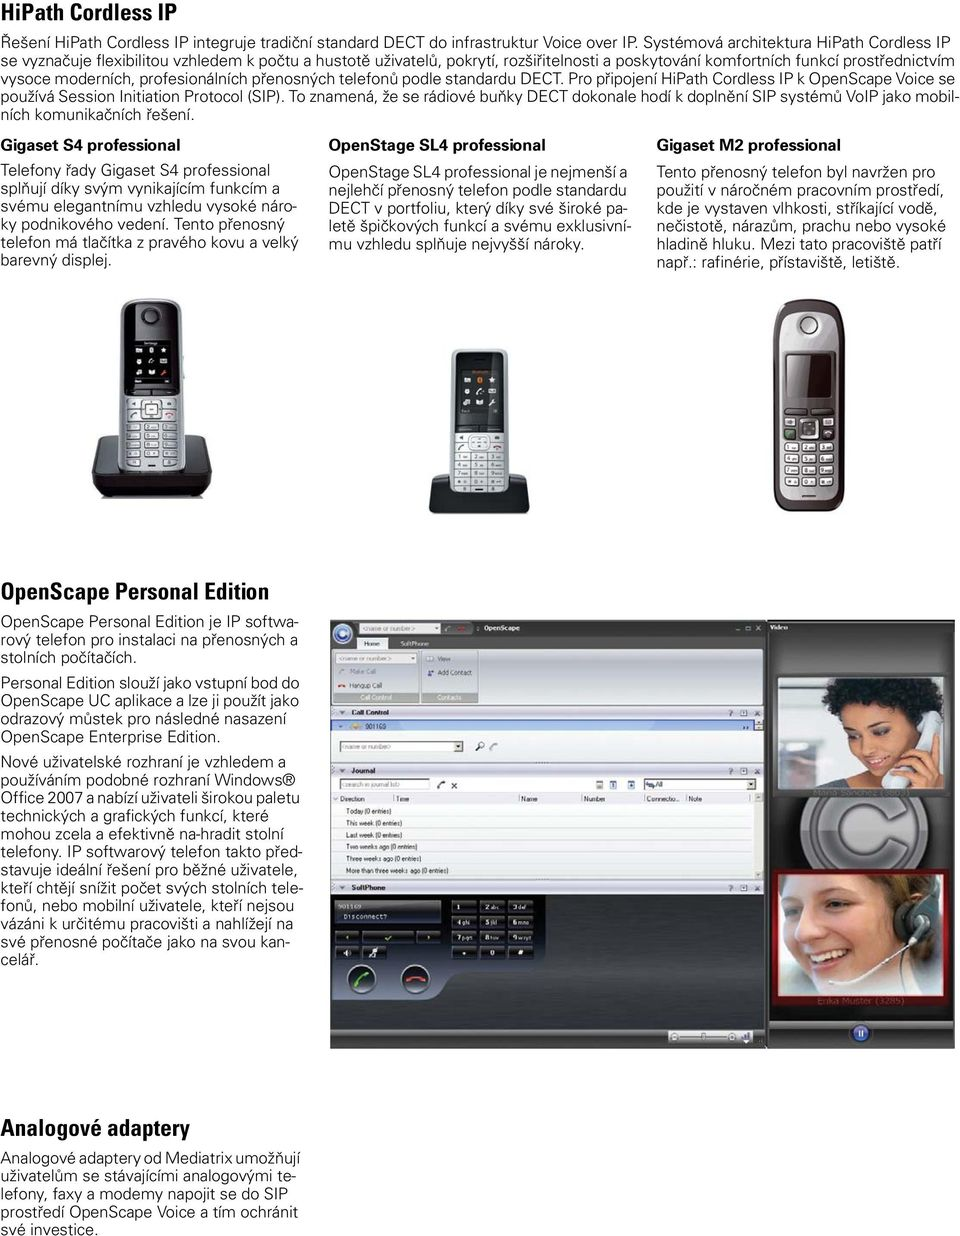 profesionálních přenosných telefonů podle standardu DECT. Pro připojení HiPath Cordless IP k OpenScape Voice se používá Session Initiation Protocol (SIP).